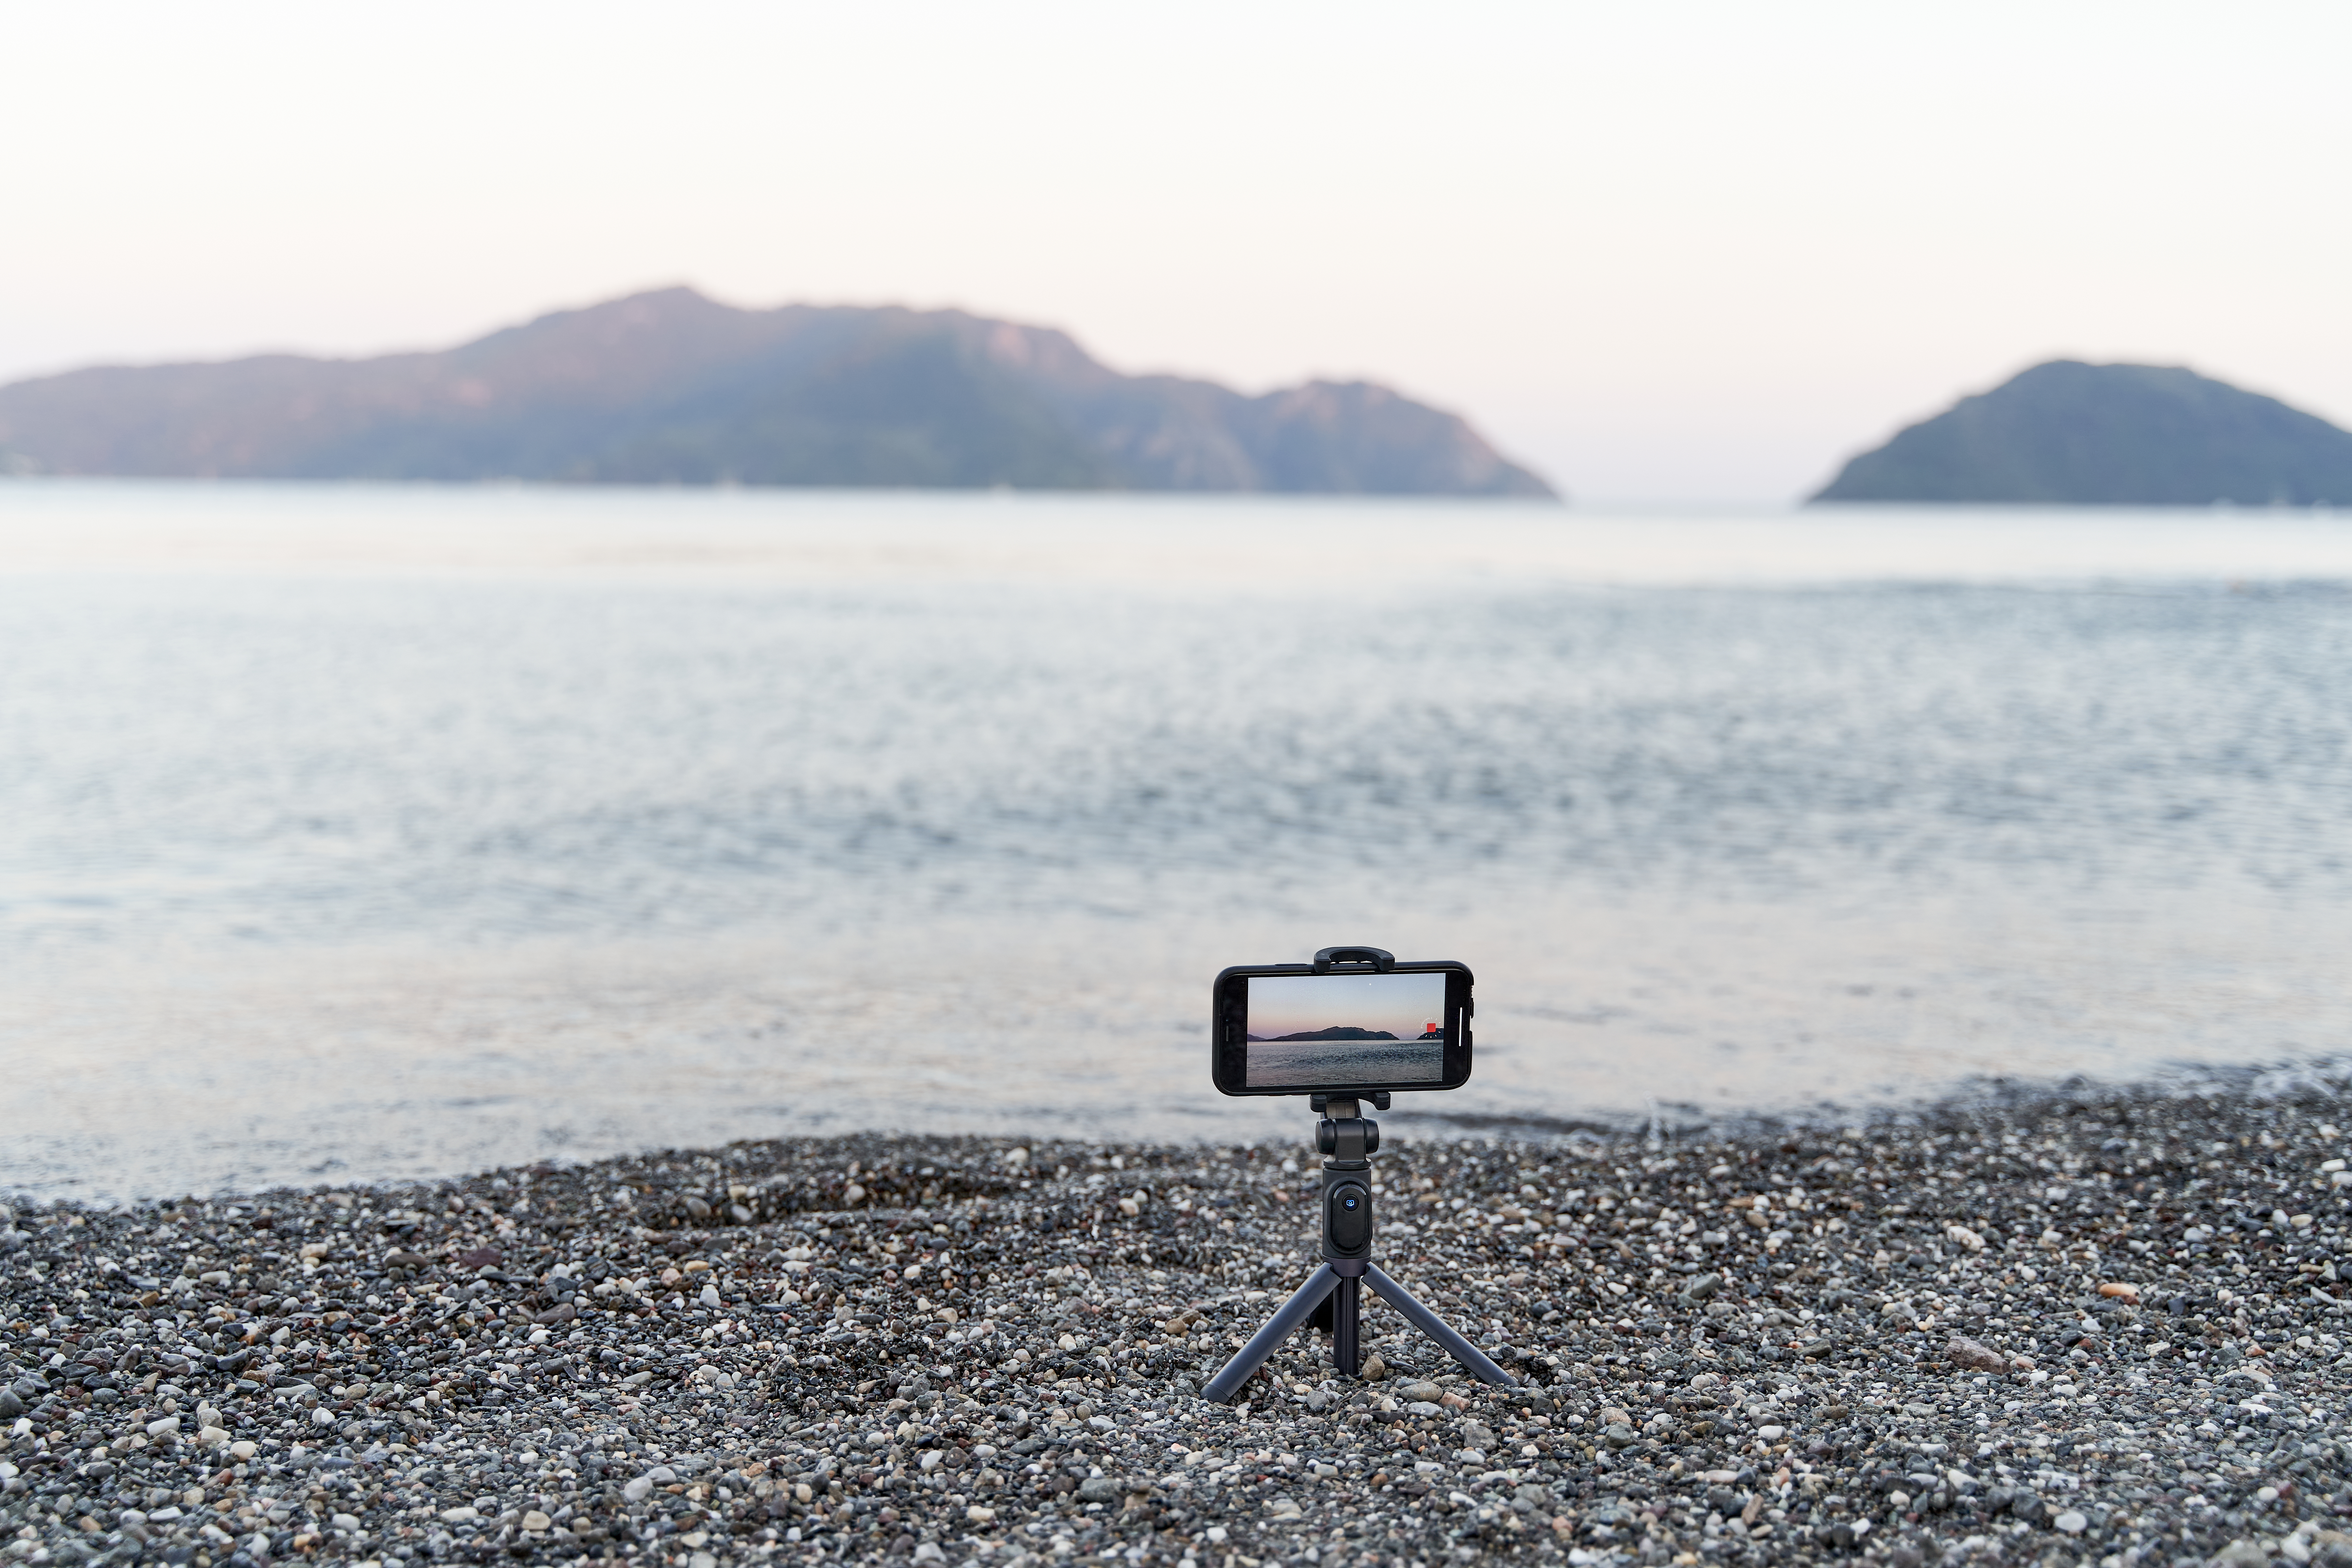 Professional photos using a tripod